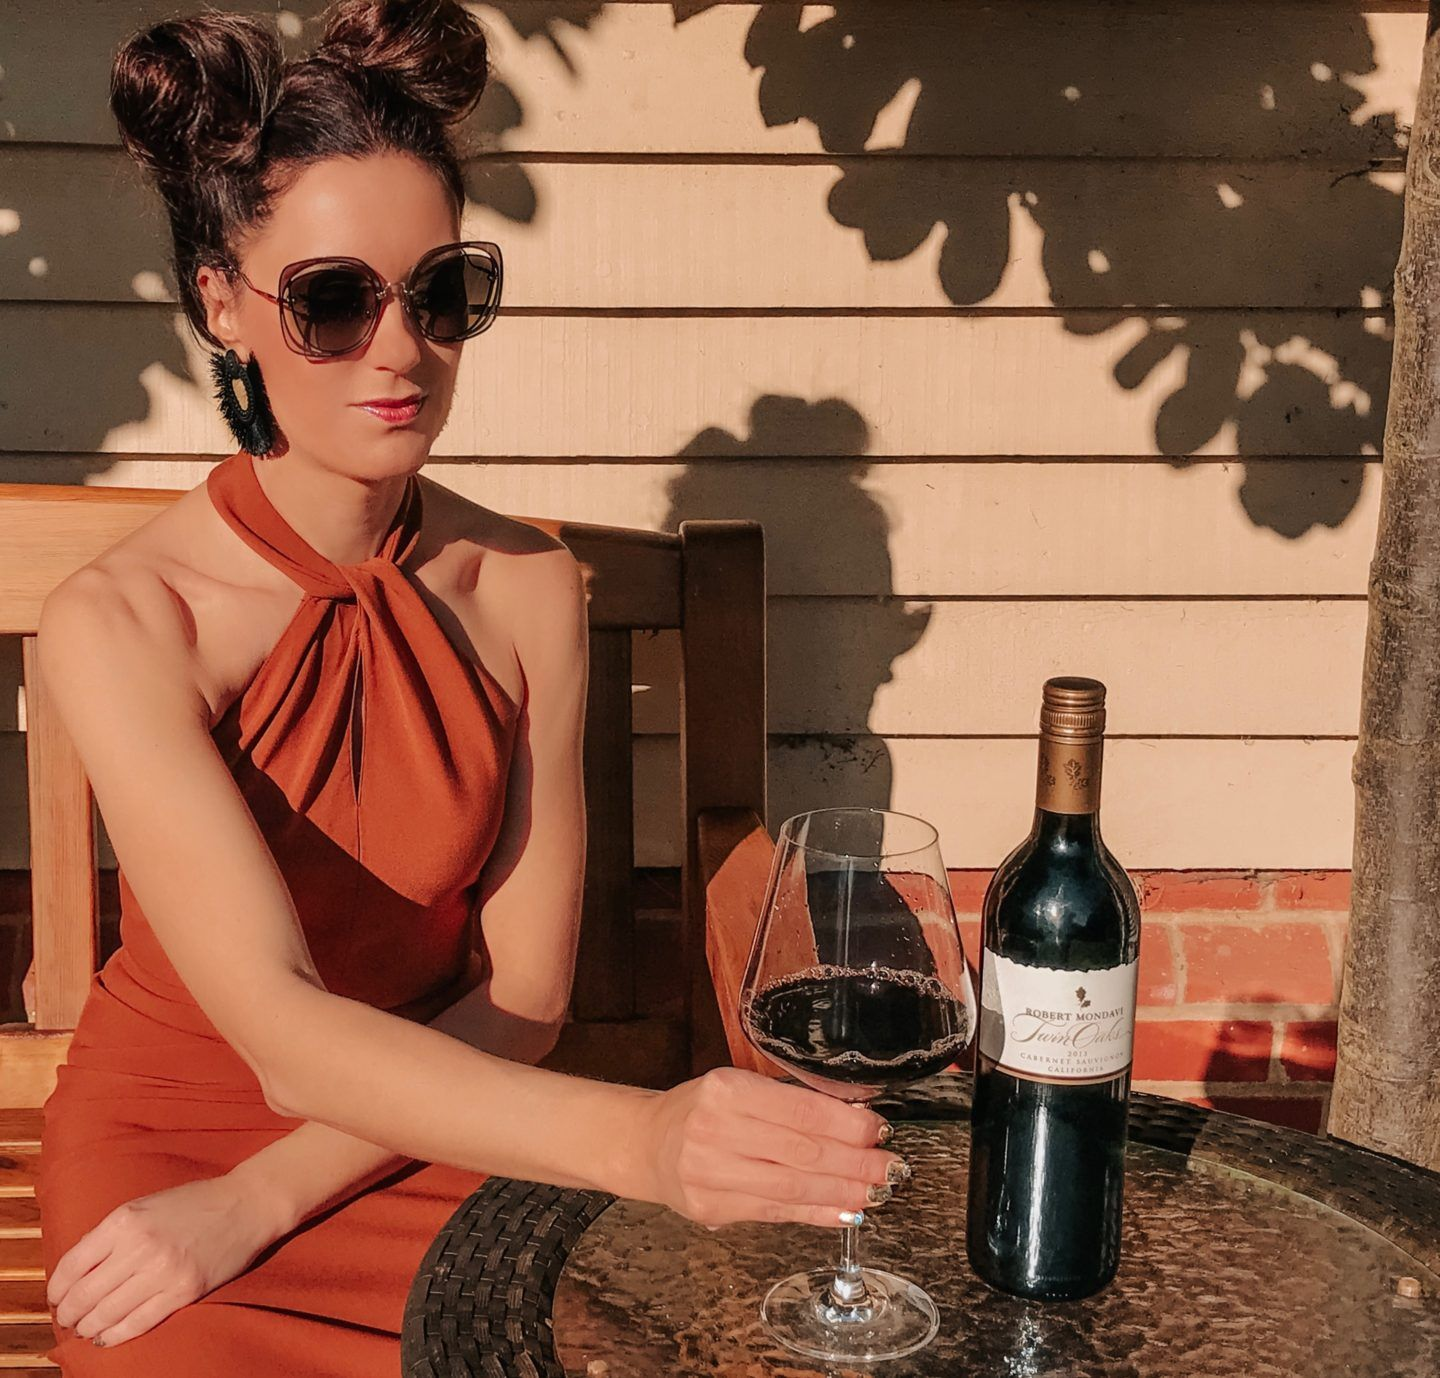 ROBERT MONDAVI TWIN OAKS Cabernet Sauvignon | Food Pairing | 5 THINGS YOU PROBABLY DIDN'T KNOW ABOUT WINE